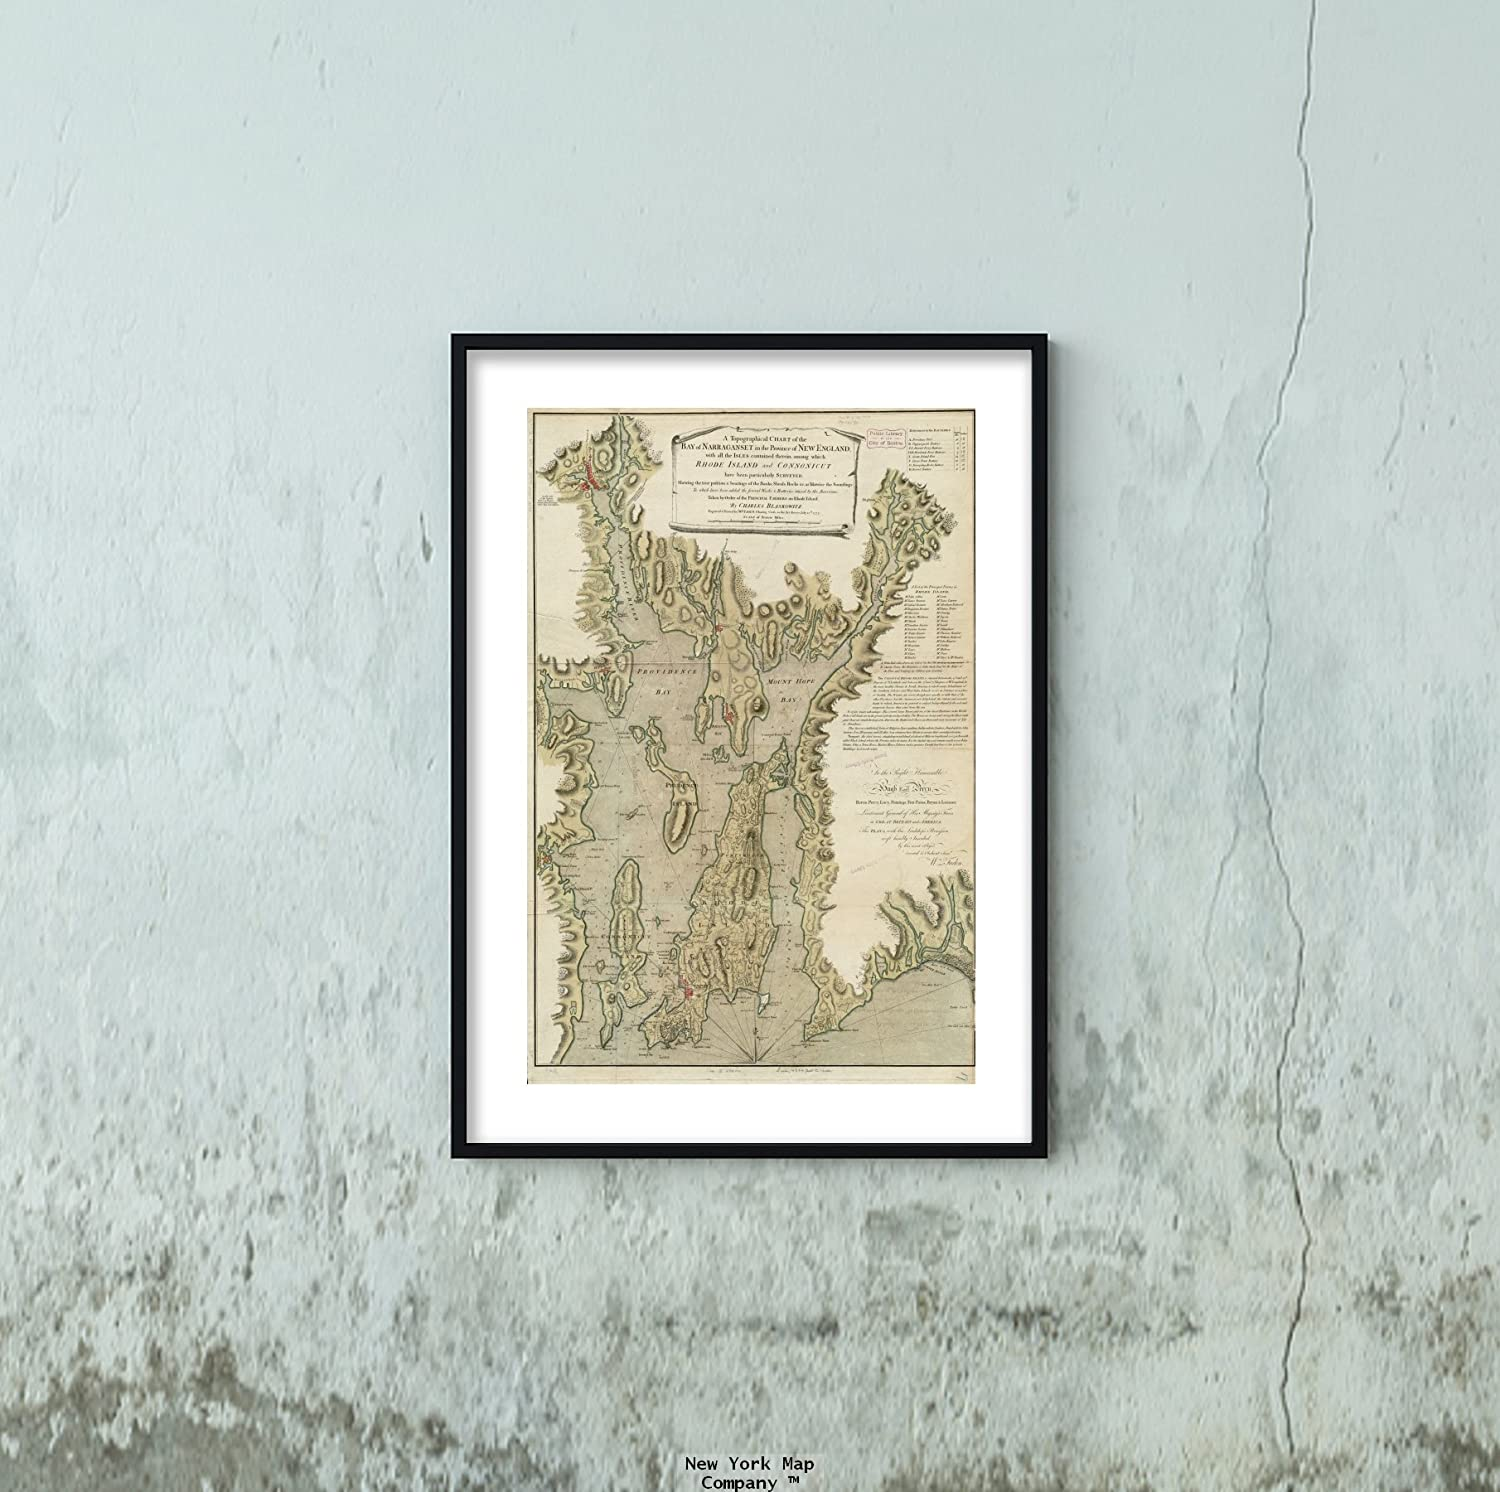 1777 Map Rhode Island|Bristol|Narragansett Bay A Topographical Chart of The Bay of Narraganset i|Vintage Fine Art Reproduction|Ready to Frame